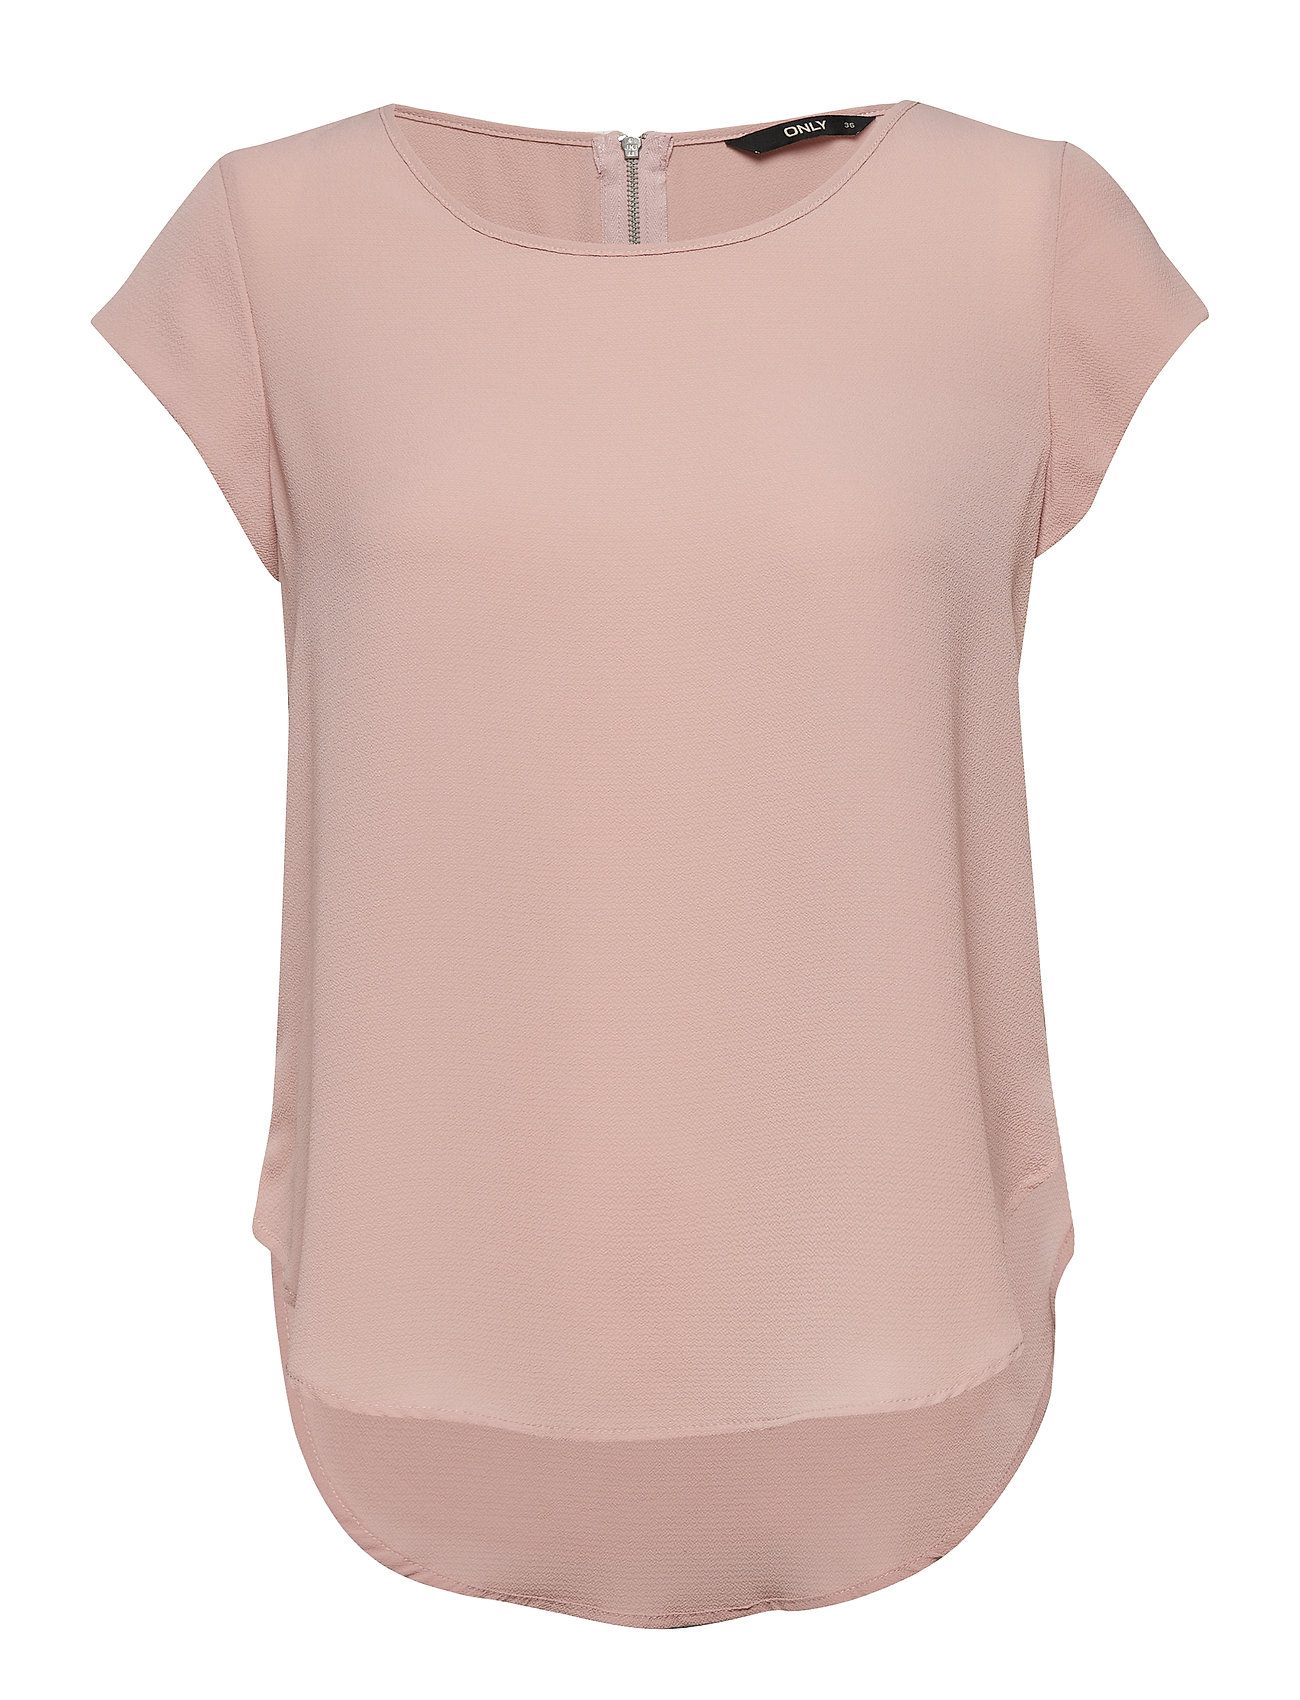 ONLY ONLVIC S/S SOLID TOP NOOS WVN - PALE MAUVE